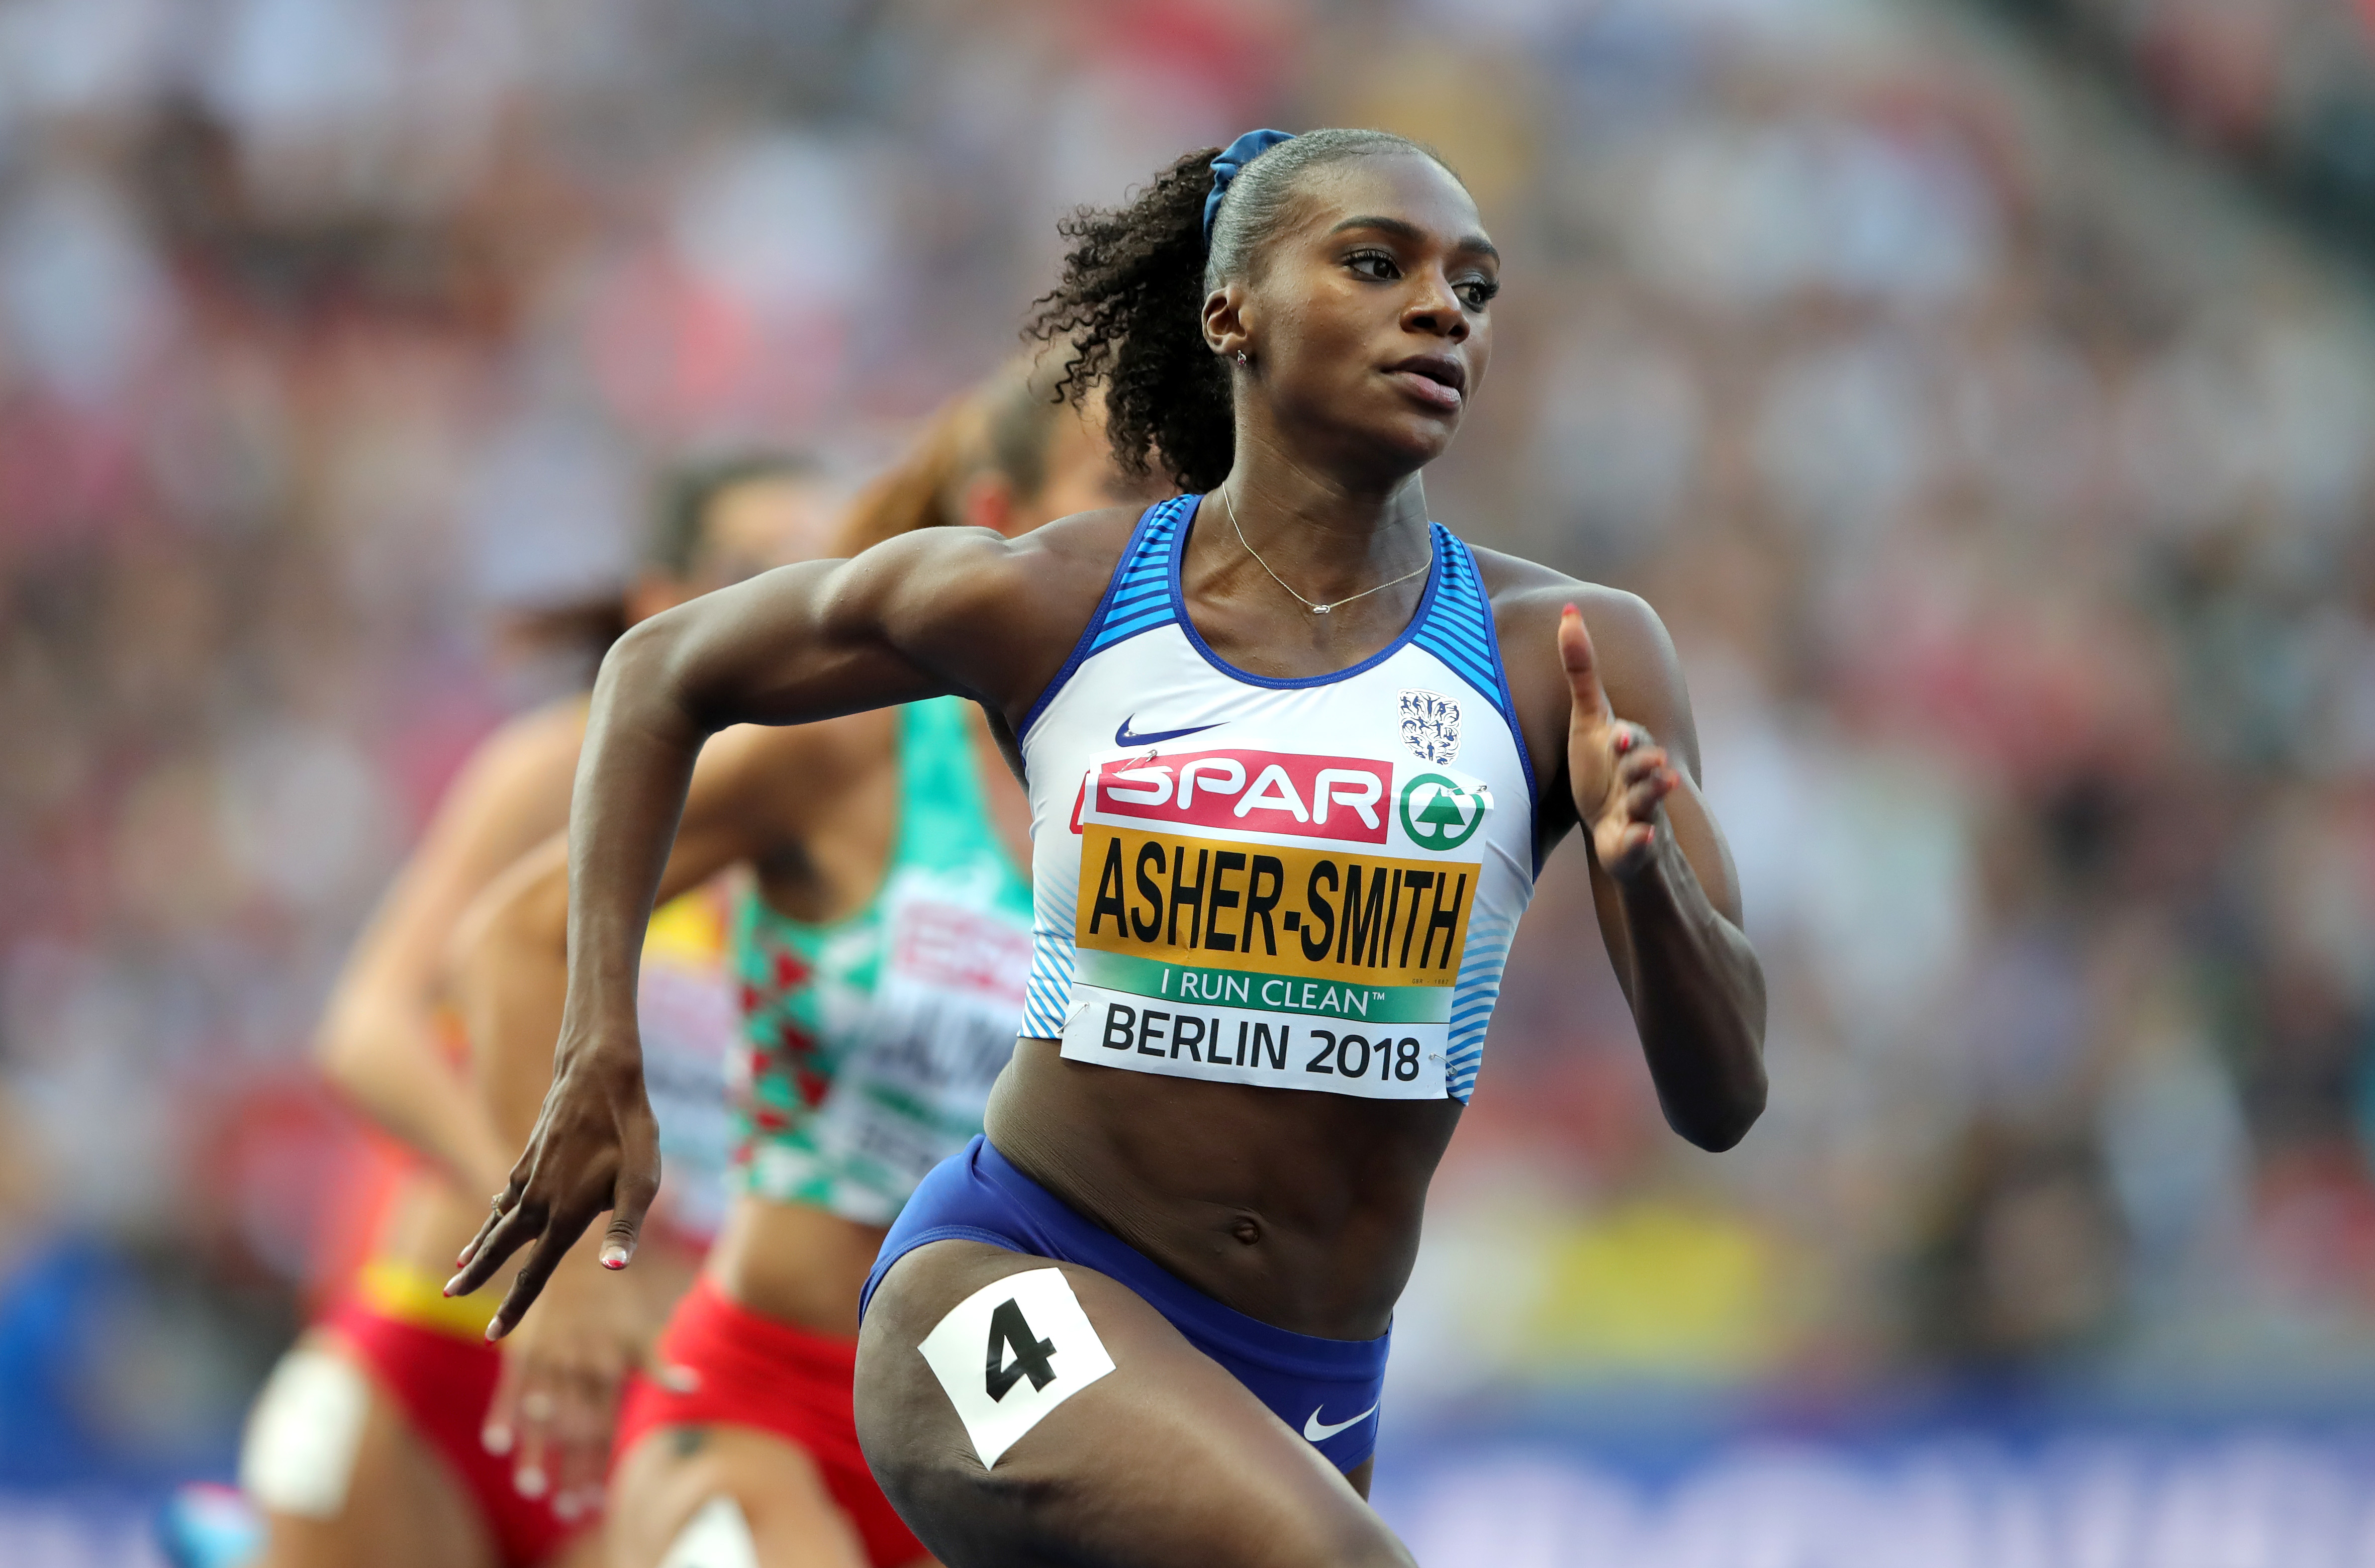 Diamond League: Continent's best aim for glory in Zurich and Brussels